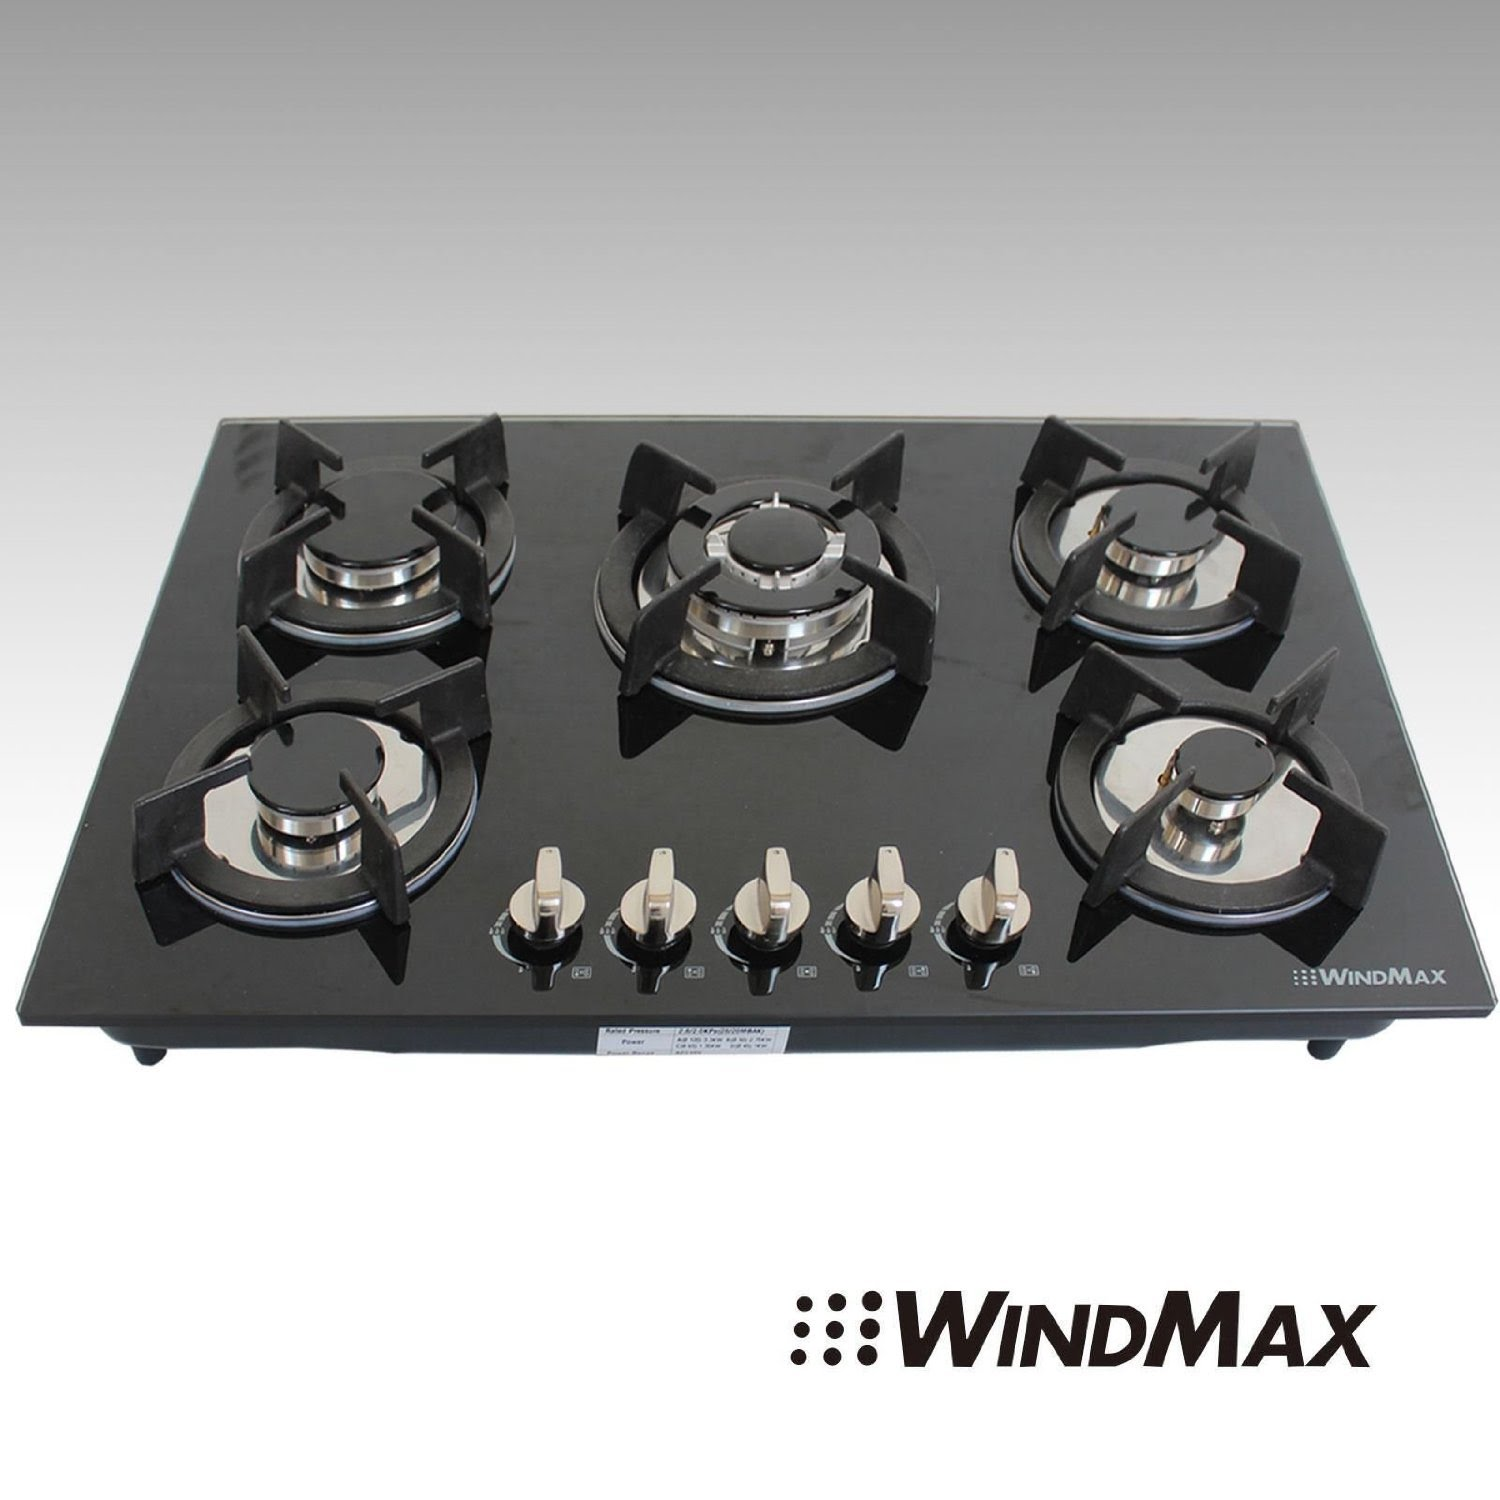 Review: WINDMAX 30 Fashion Black Tempered Glass Built-in Kitchen 5 ...